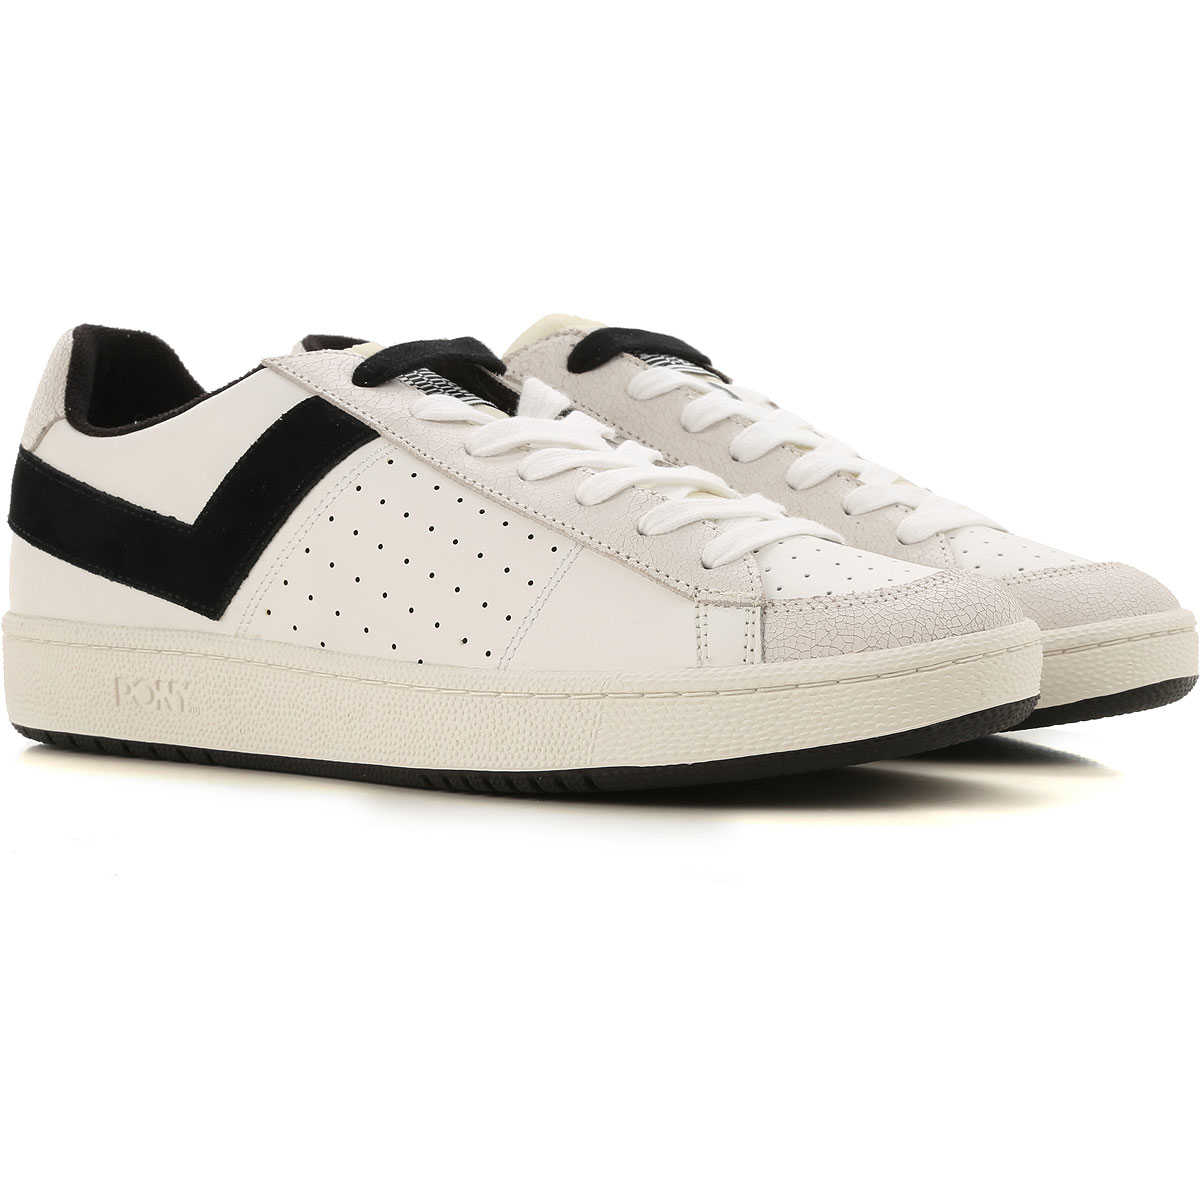 Pony Sneakers for Men, White, Leather